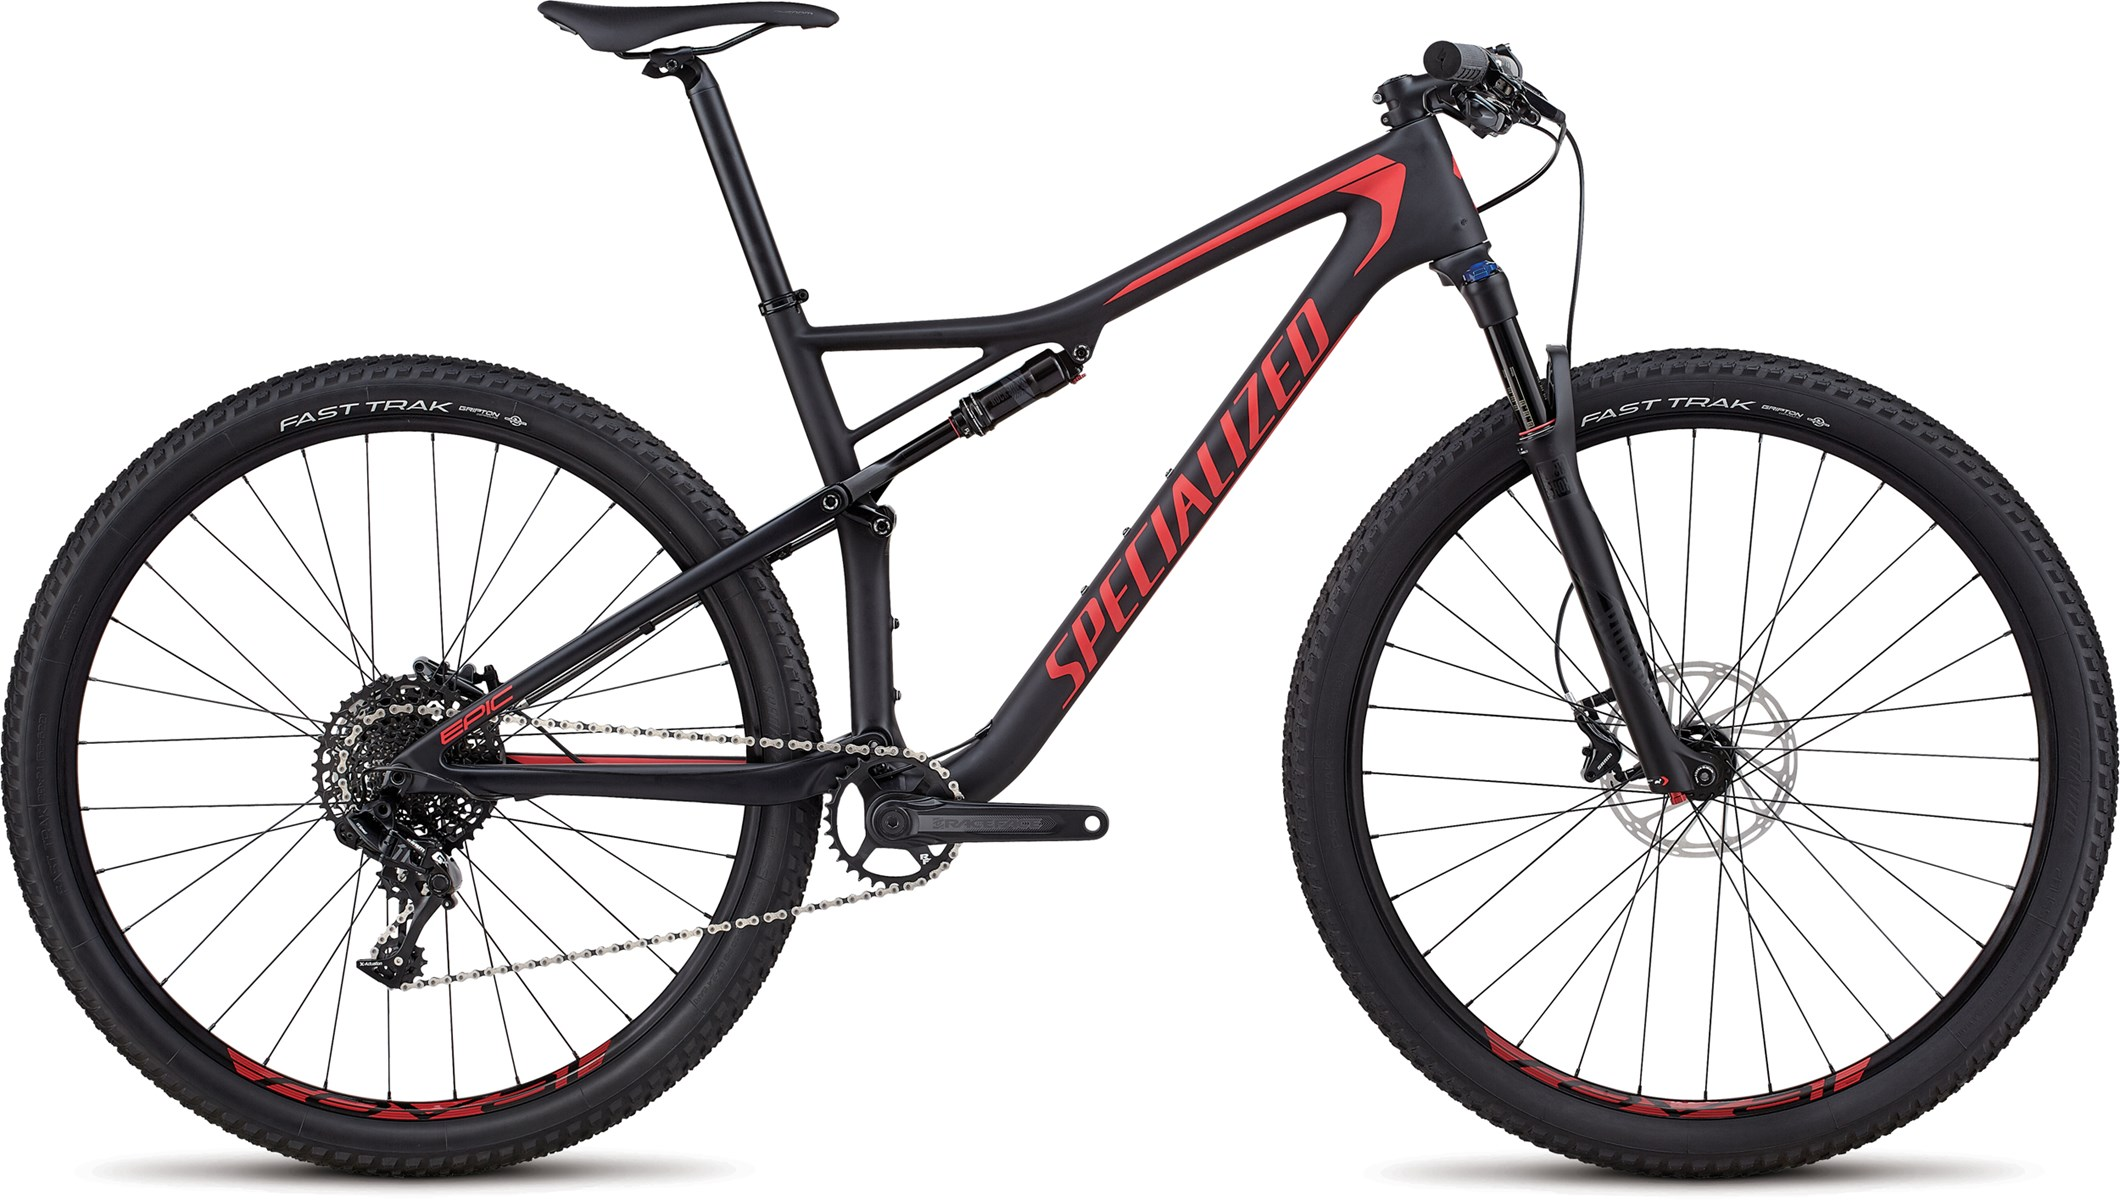 Specialized Mountain Bikes For Sale | BCCA